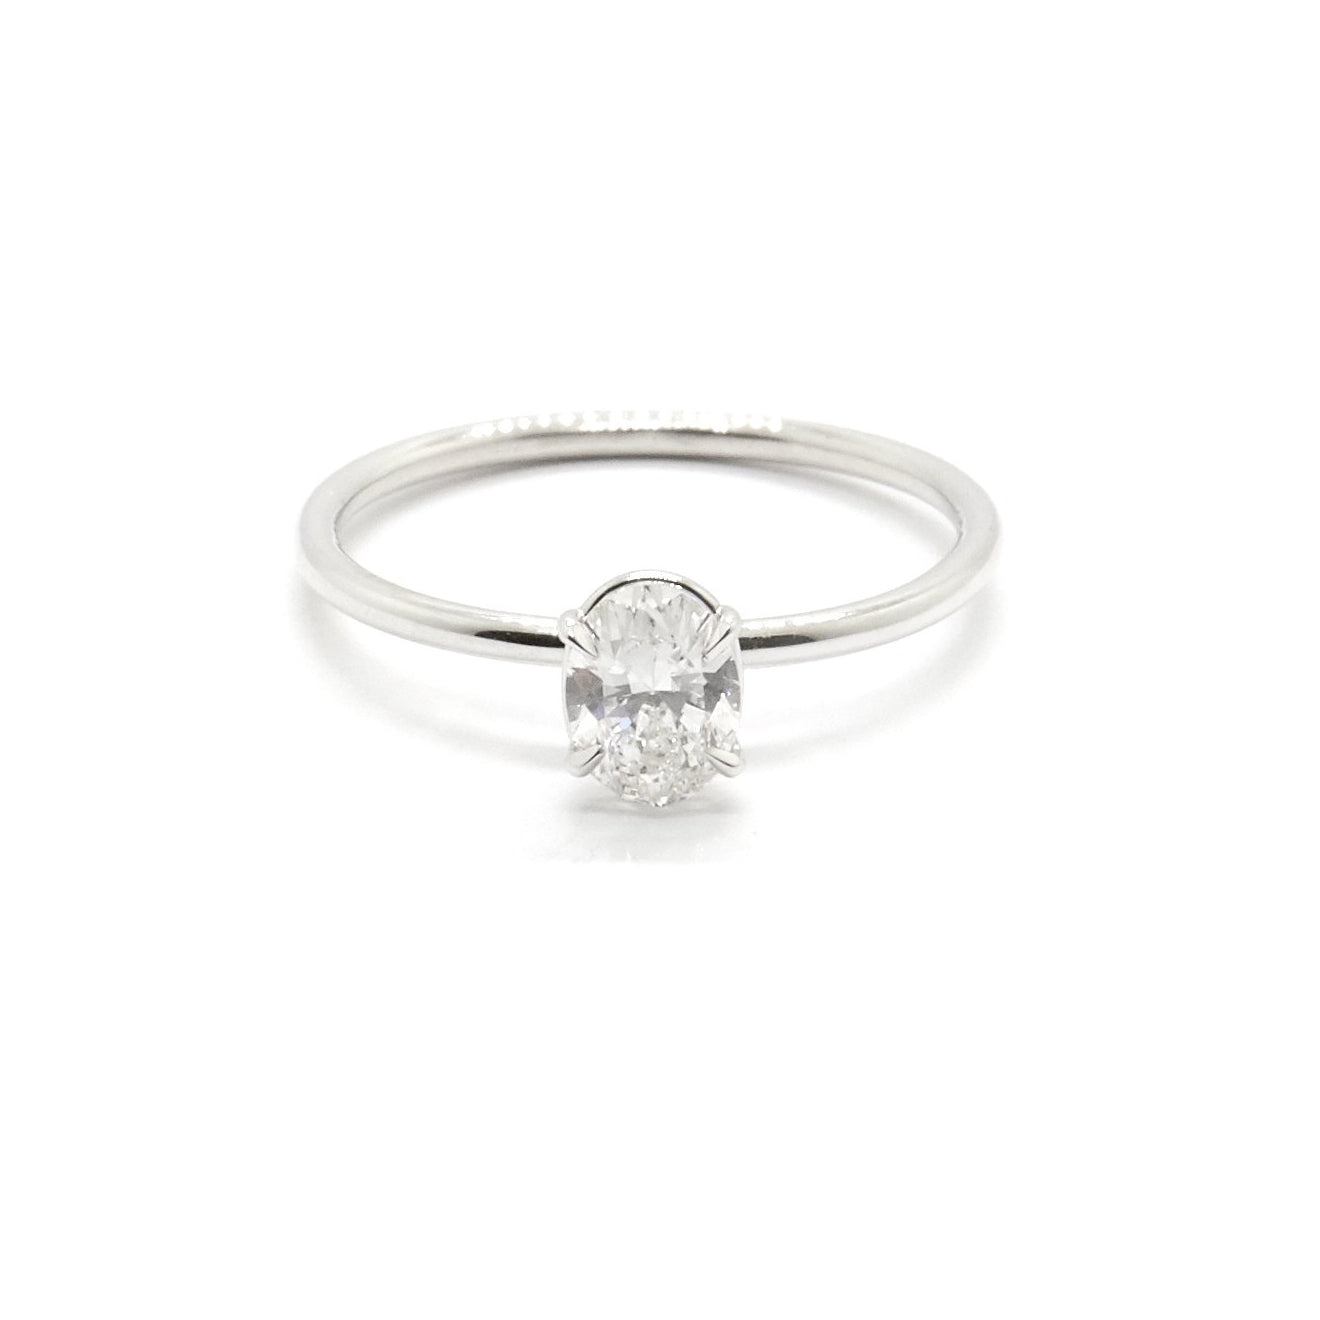 Oval Signature Solitaire | 0.5 carat Diamond